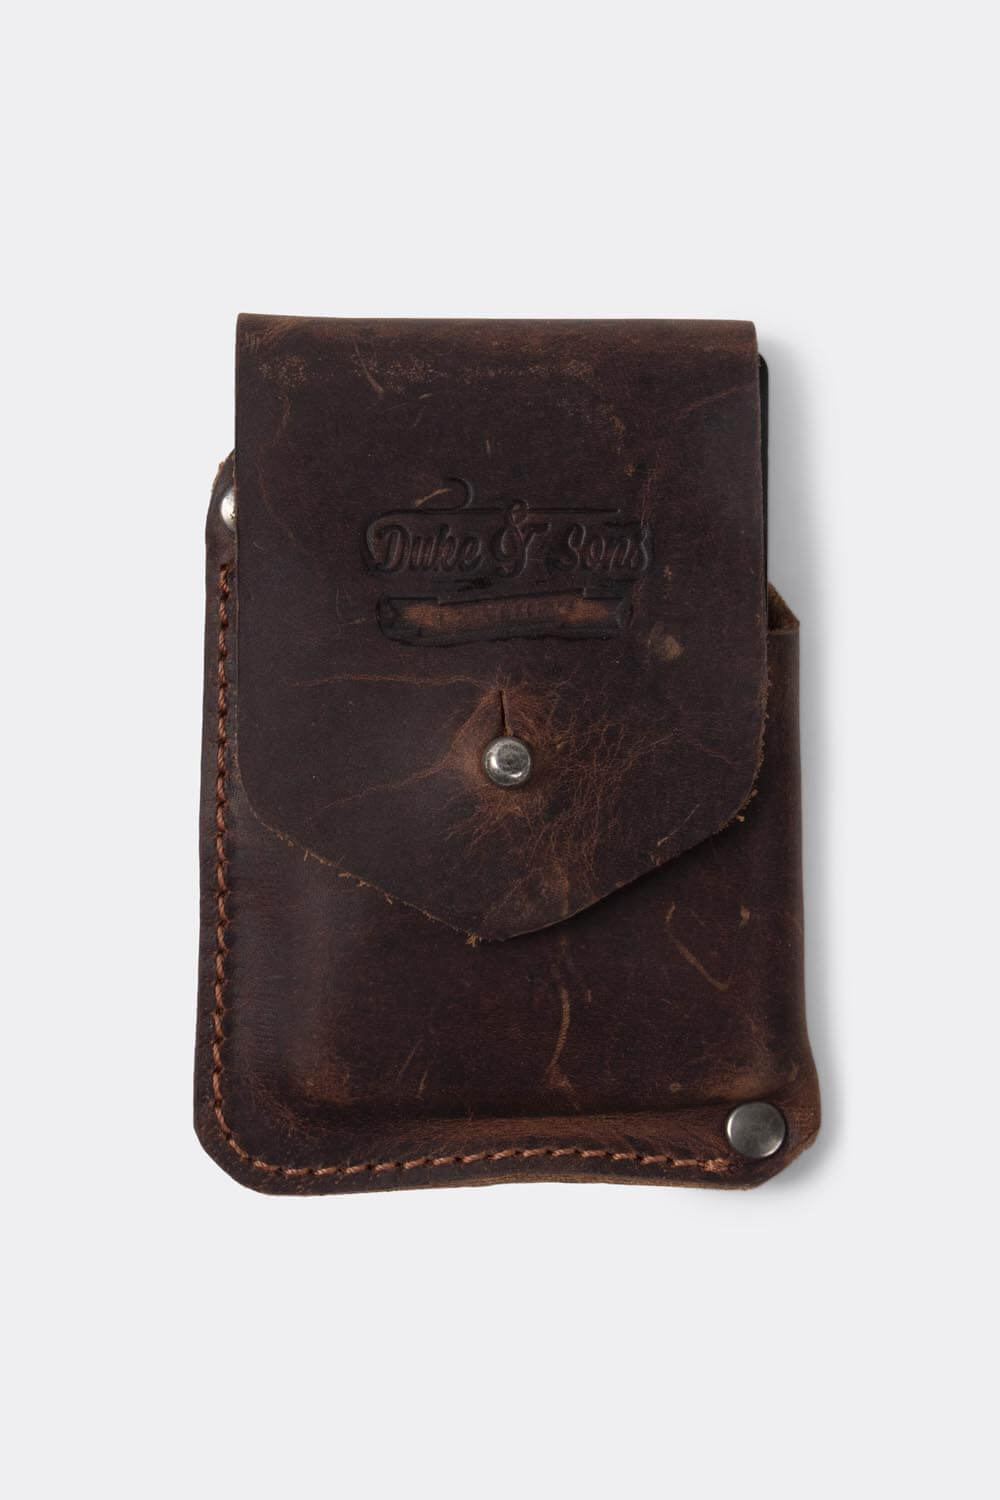 Card wallet, distressed brown leather | 10 cards - Duke & Sons Leather